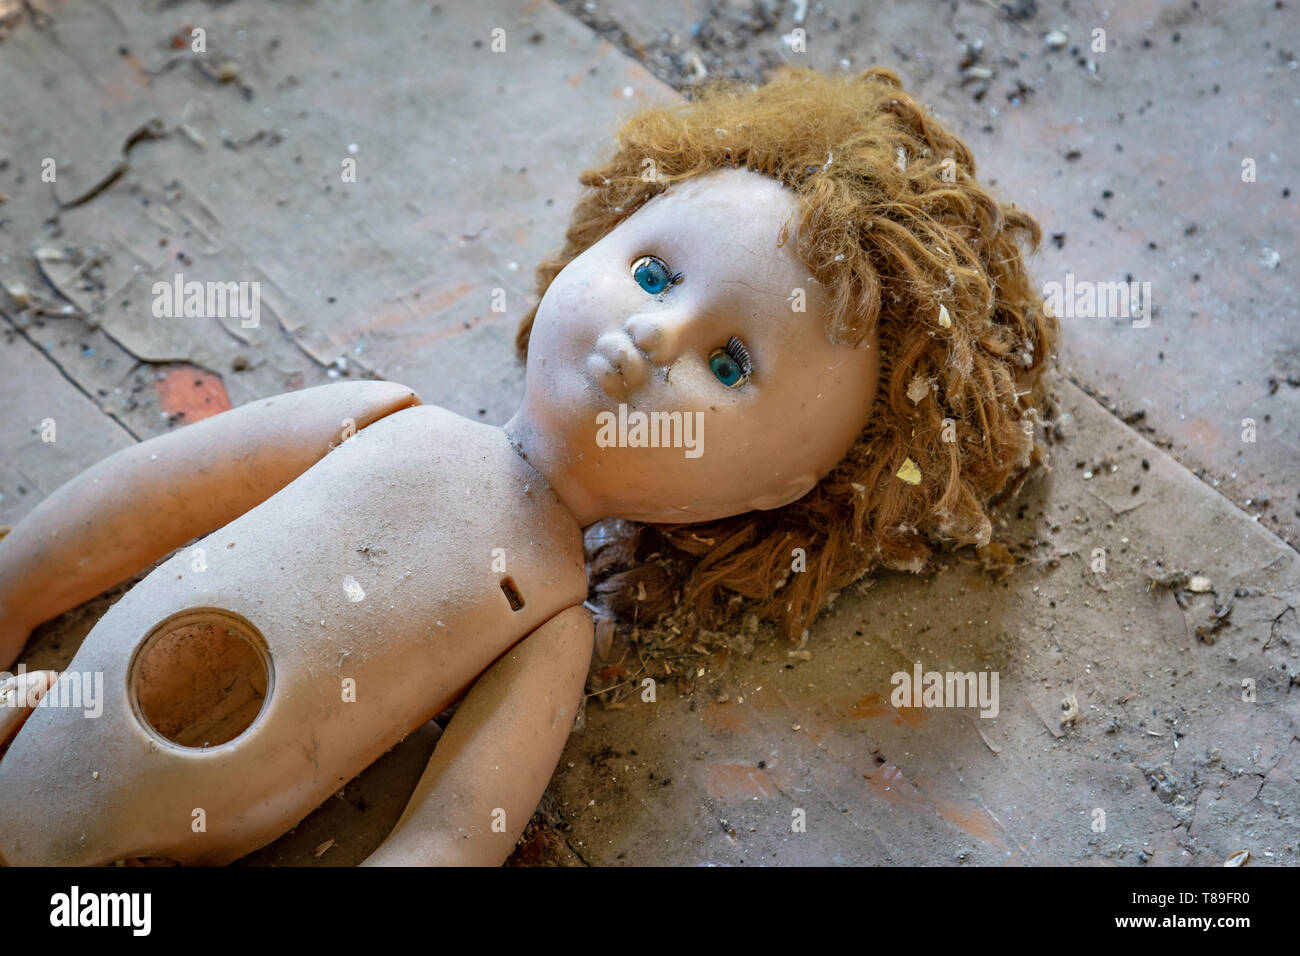 Abandoned child doll in a abandoned house in Belarus Chernobyl exclusion zone, - Stock Image